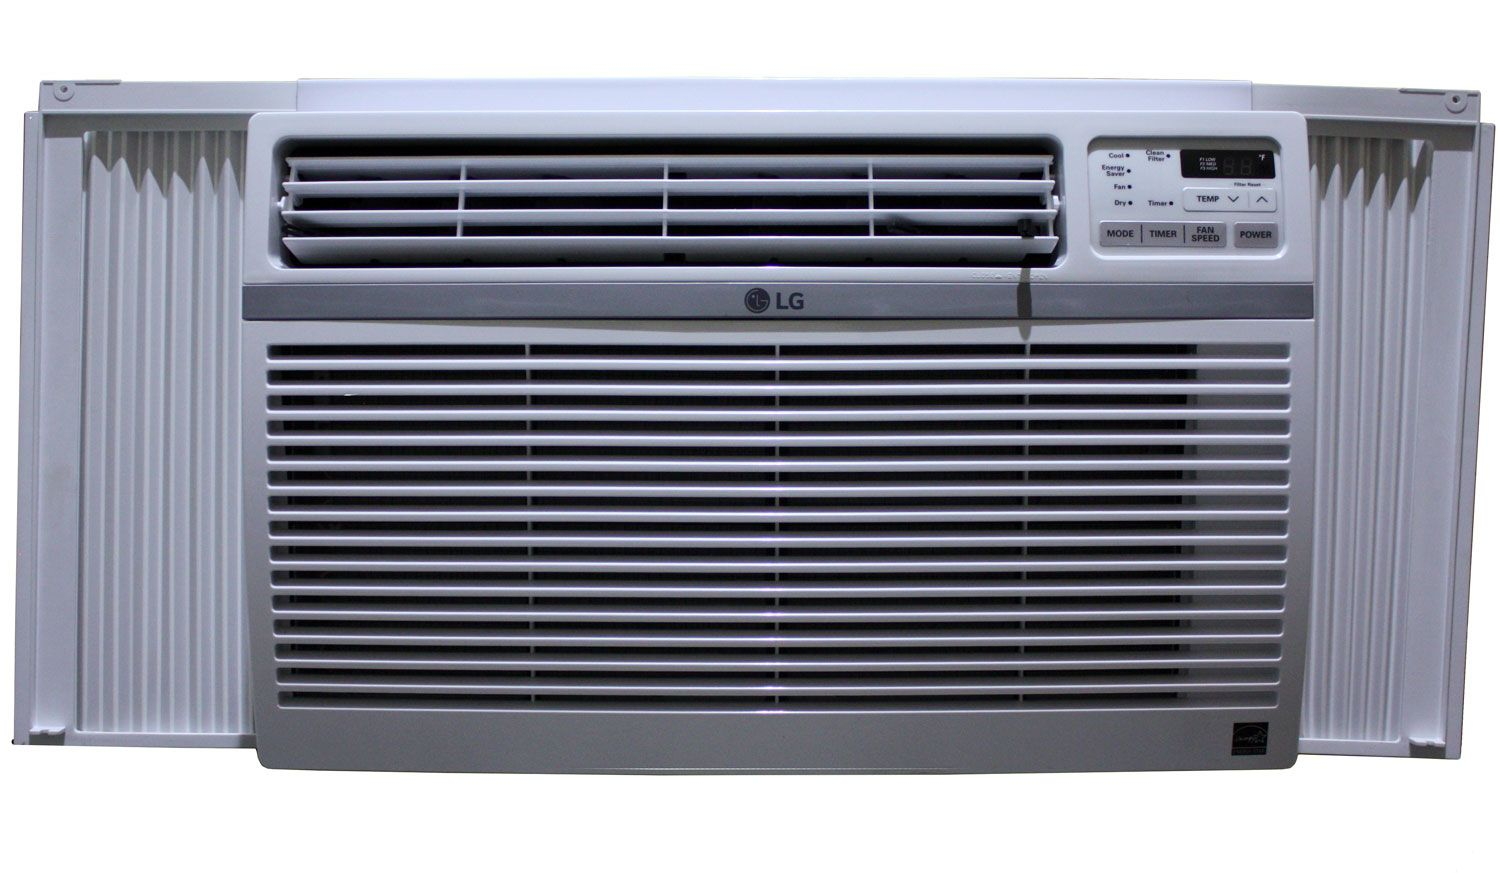 LG 10 000 BTU 12.1 EER 115V Window Air Conditioner LW1016ER #4B5780